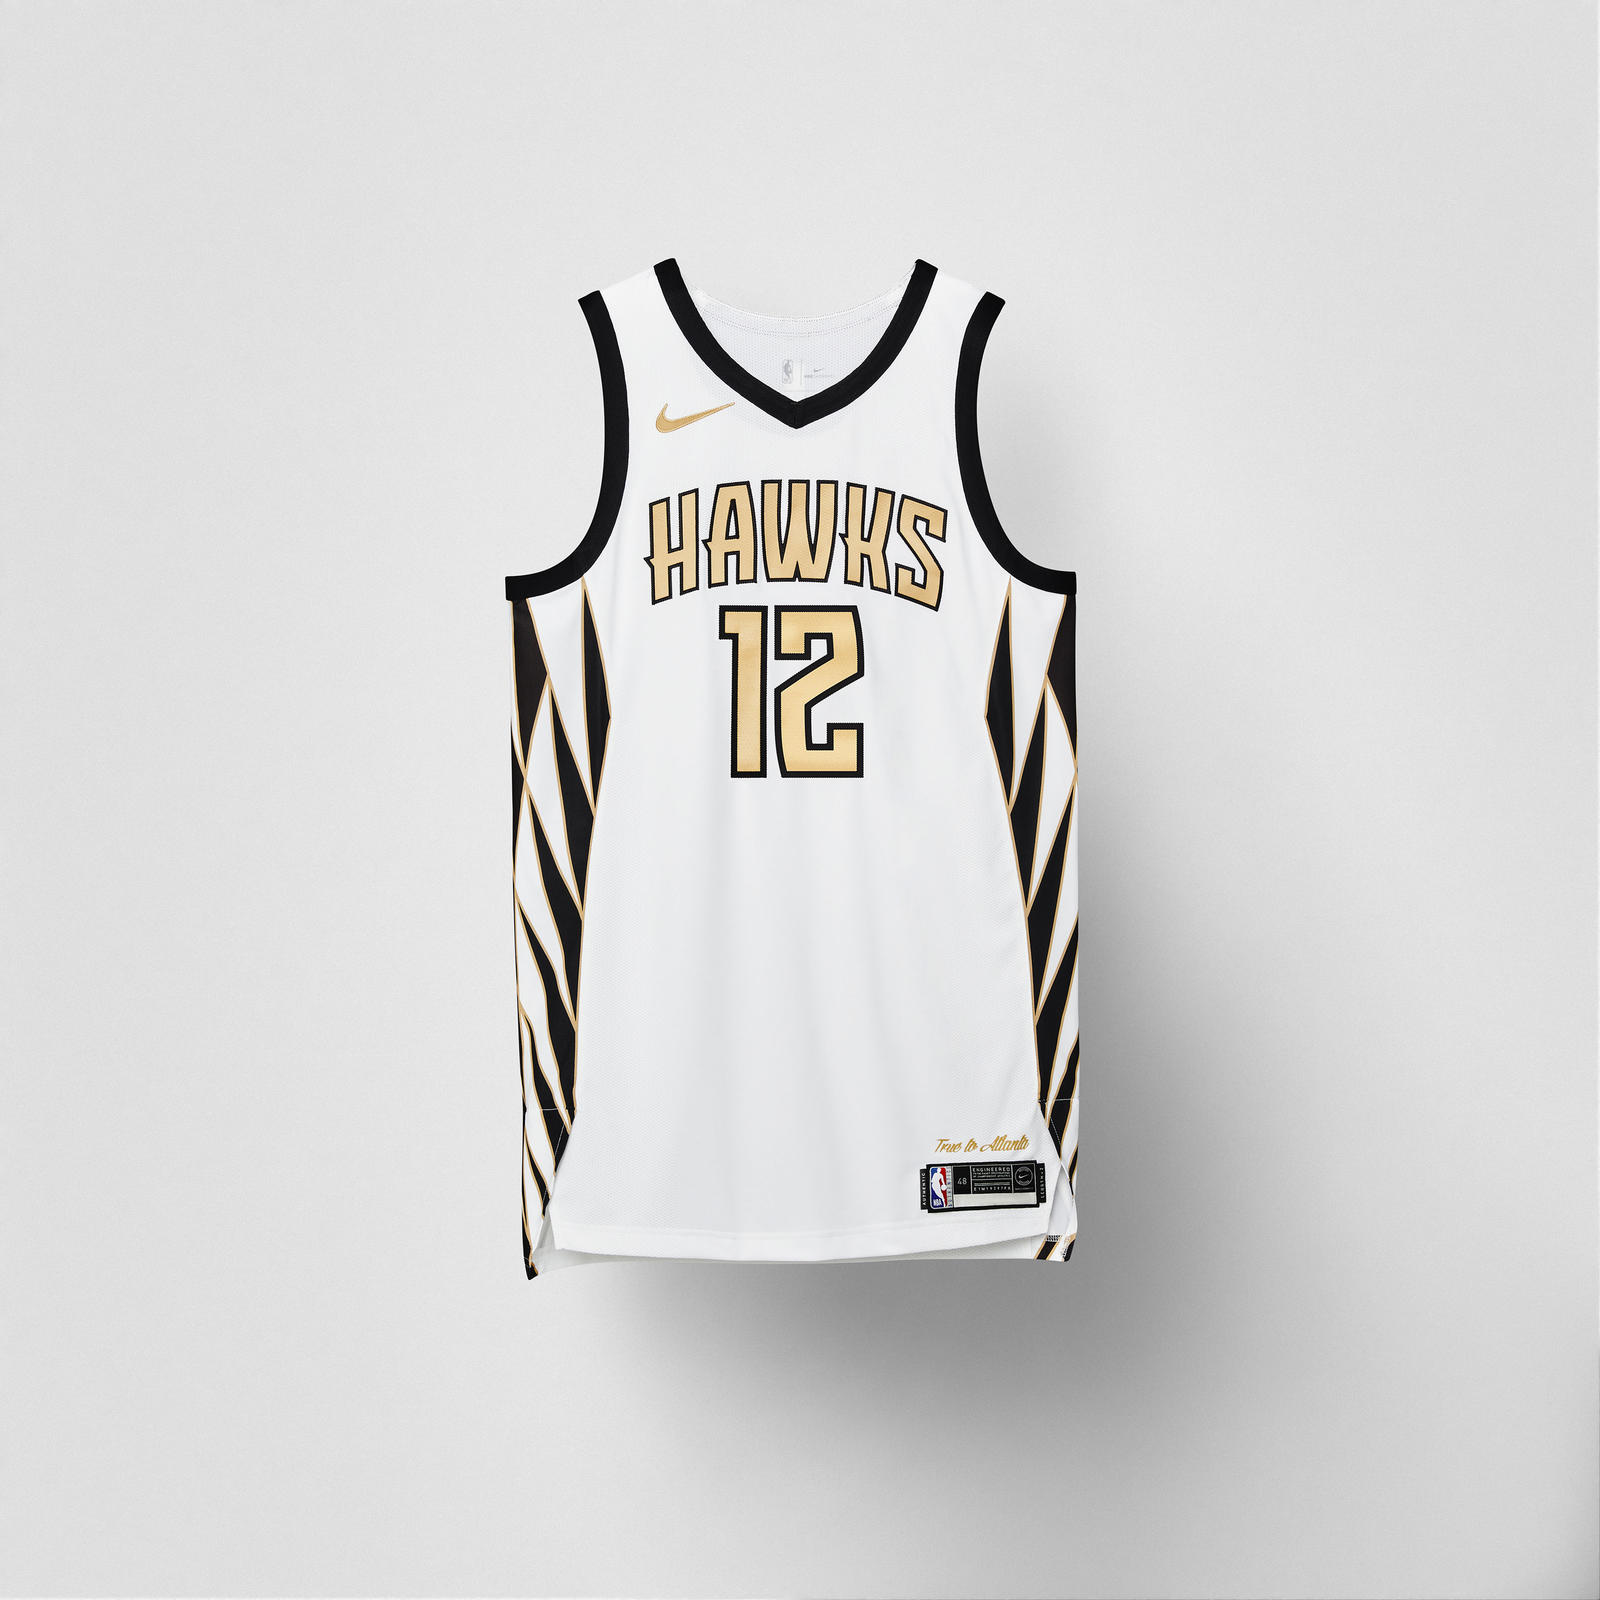 807d1d1f1 NBA City Edition Uniforms 2018-19 - Nike News